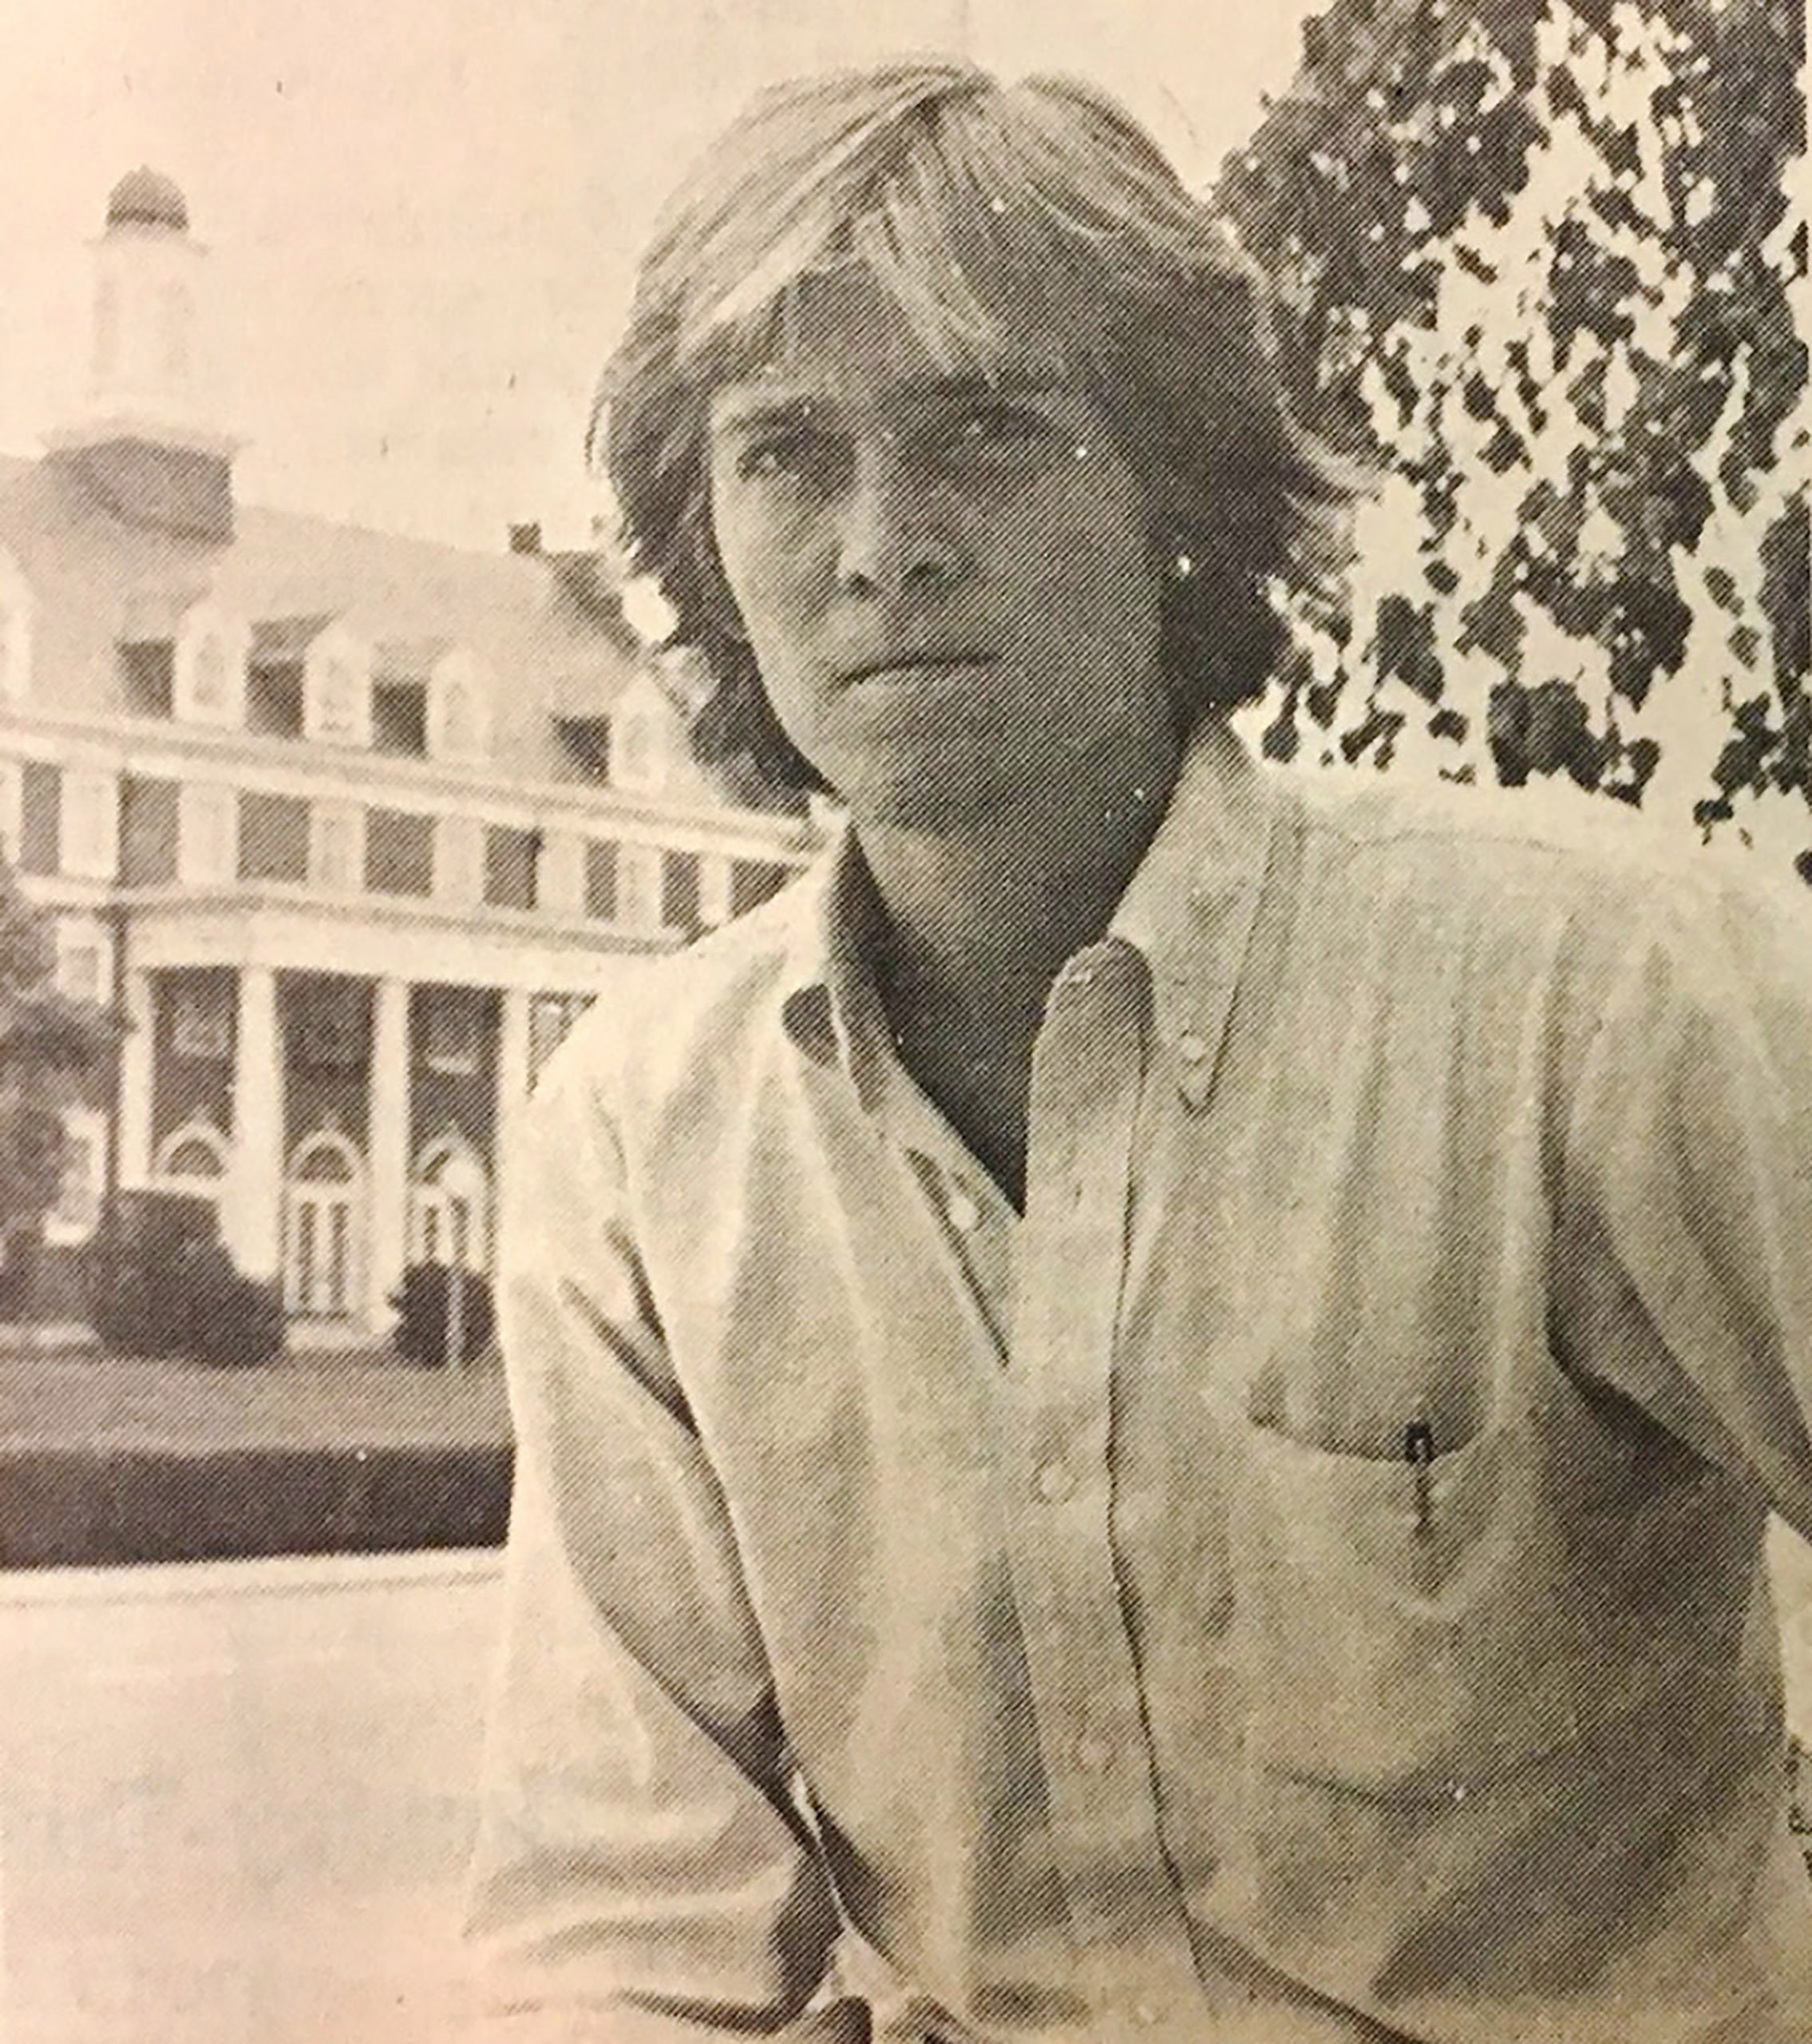 Bannon won the Student Government Association presidency during his junior year at Virginia Tech, 1975.